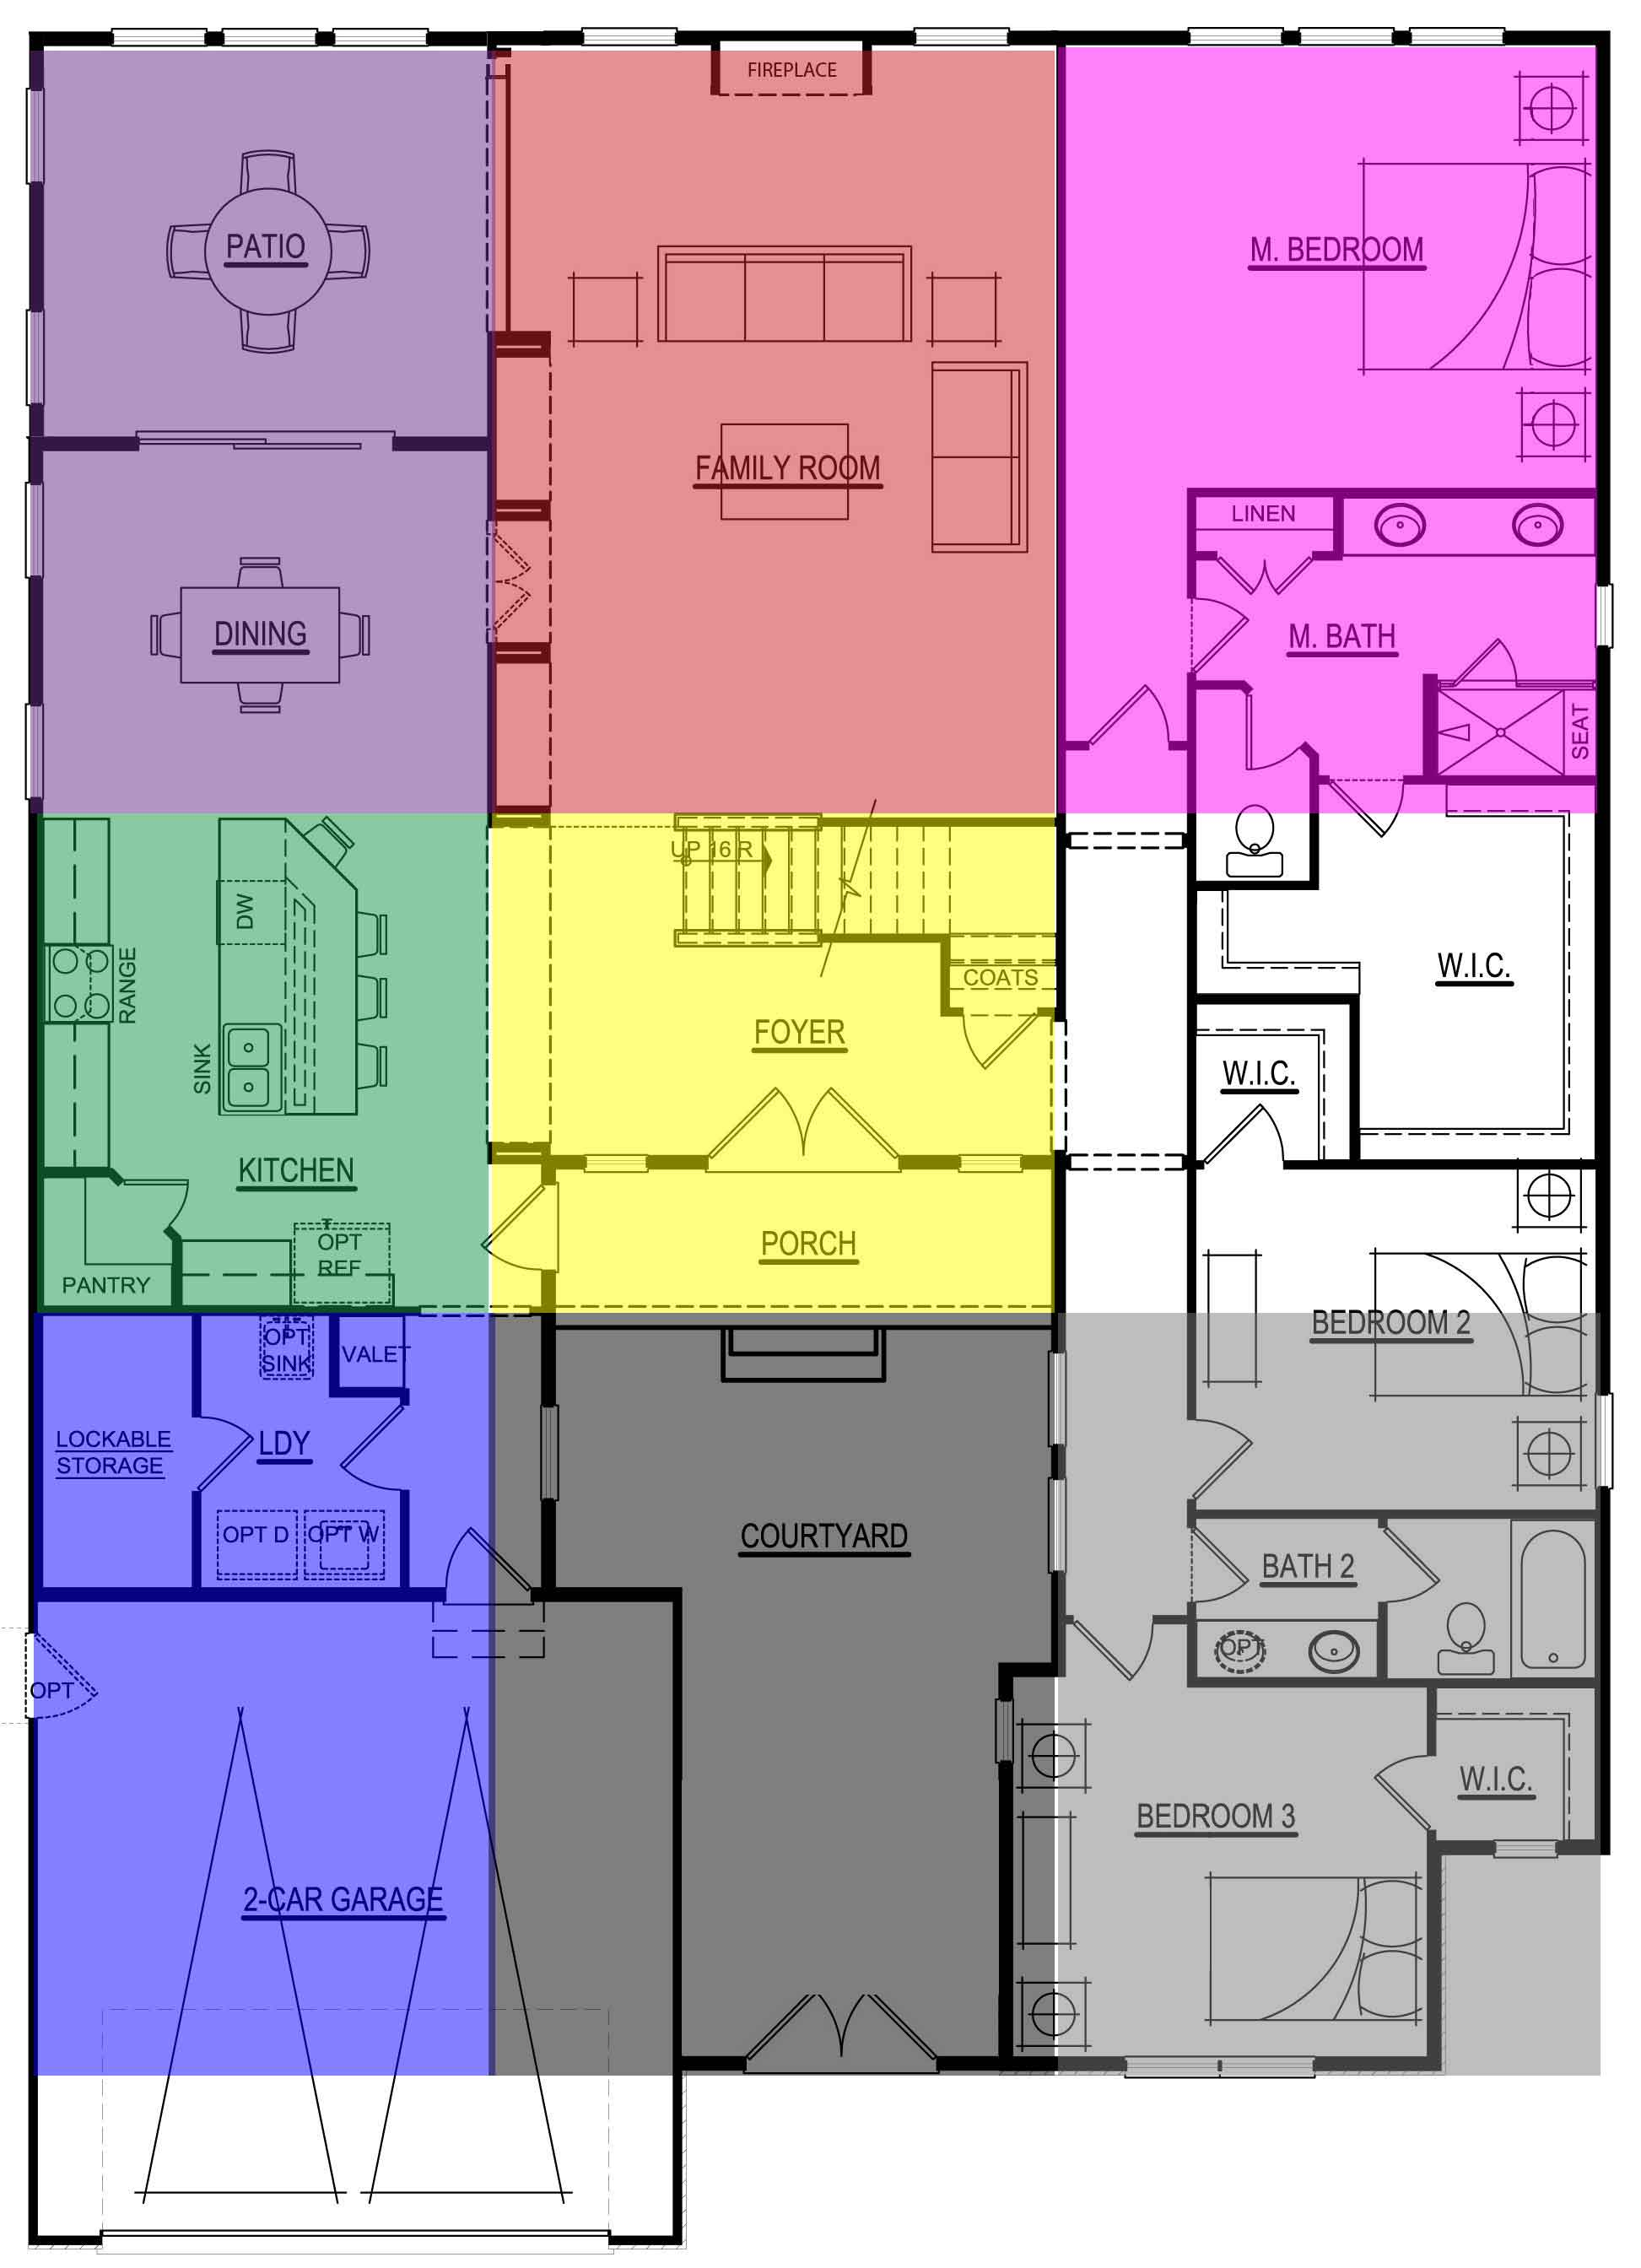 Feng shui compass or bagua ms feng shui Good house map